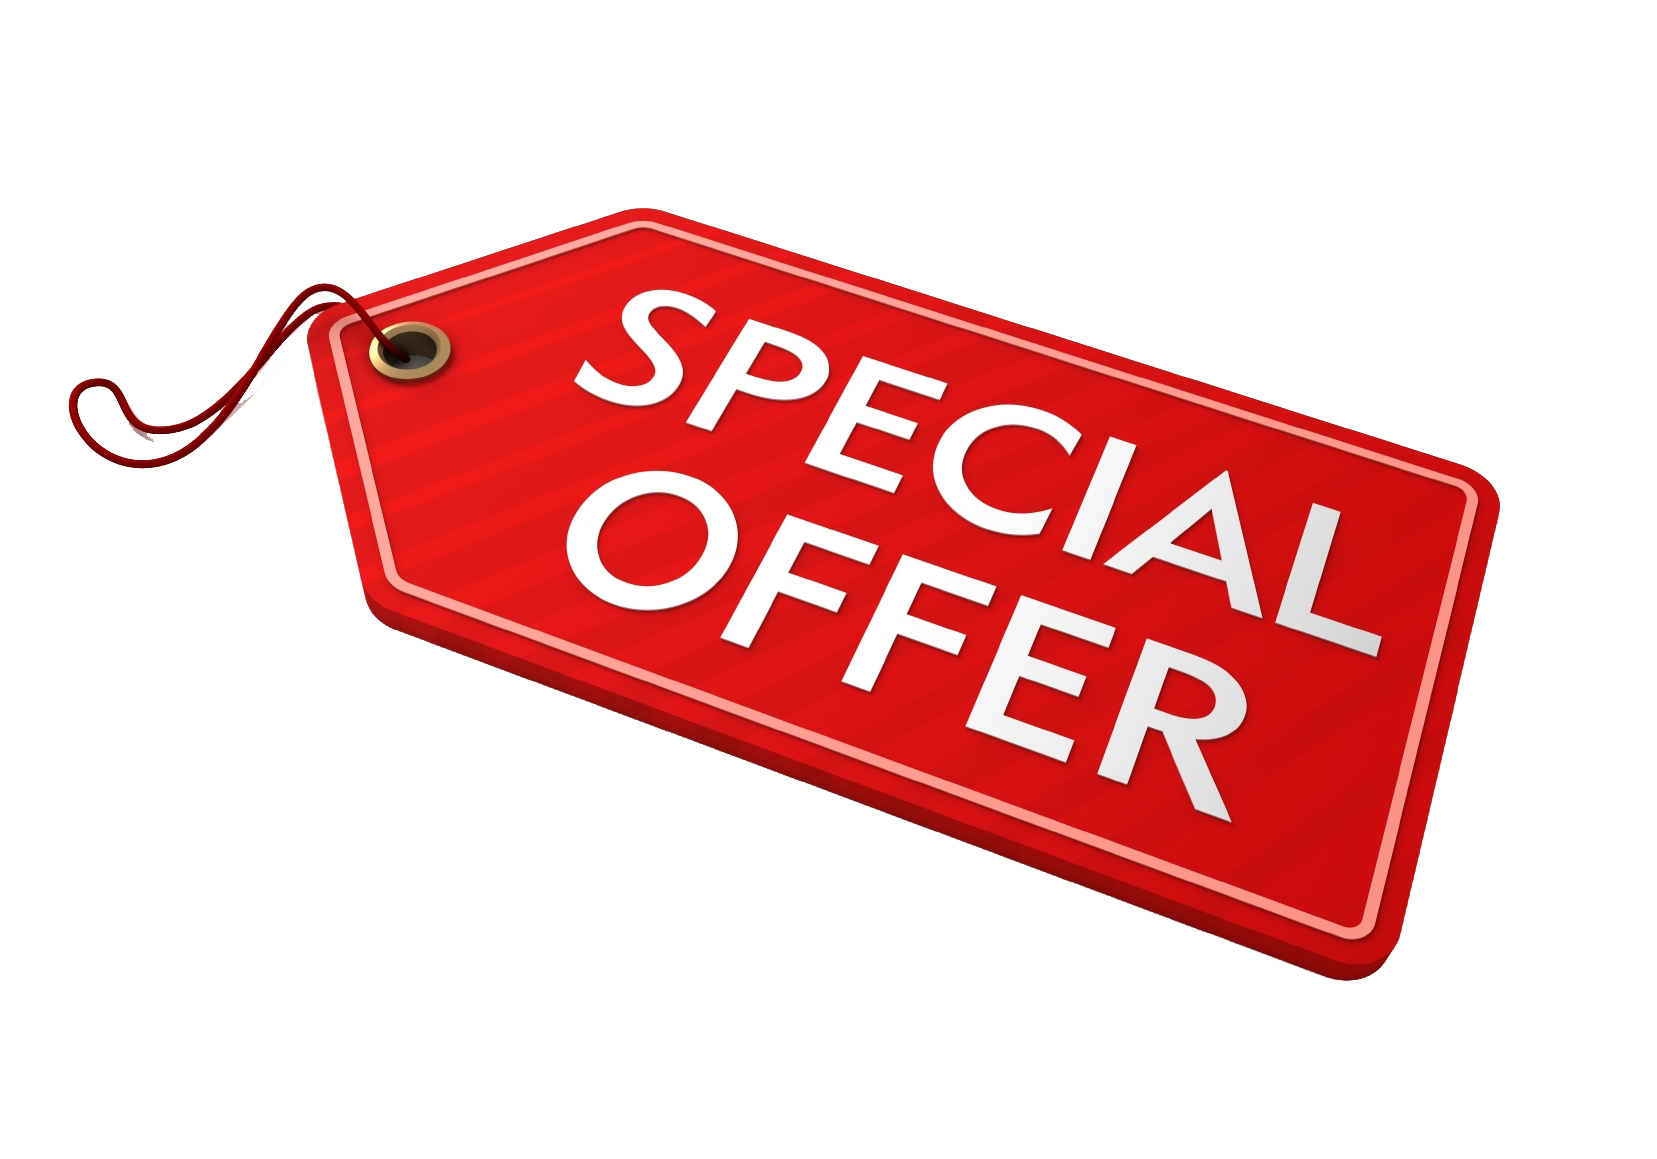 Special Offer PNG - 173605